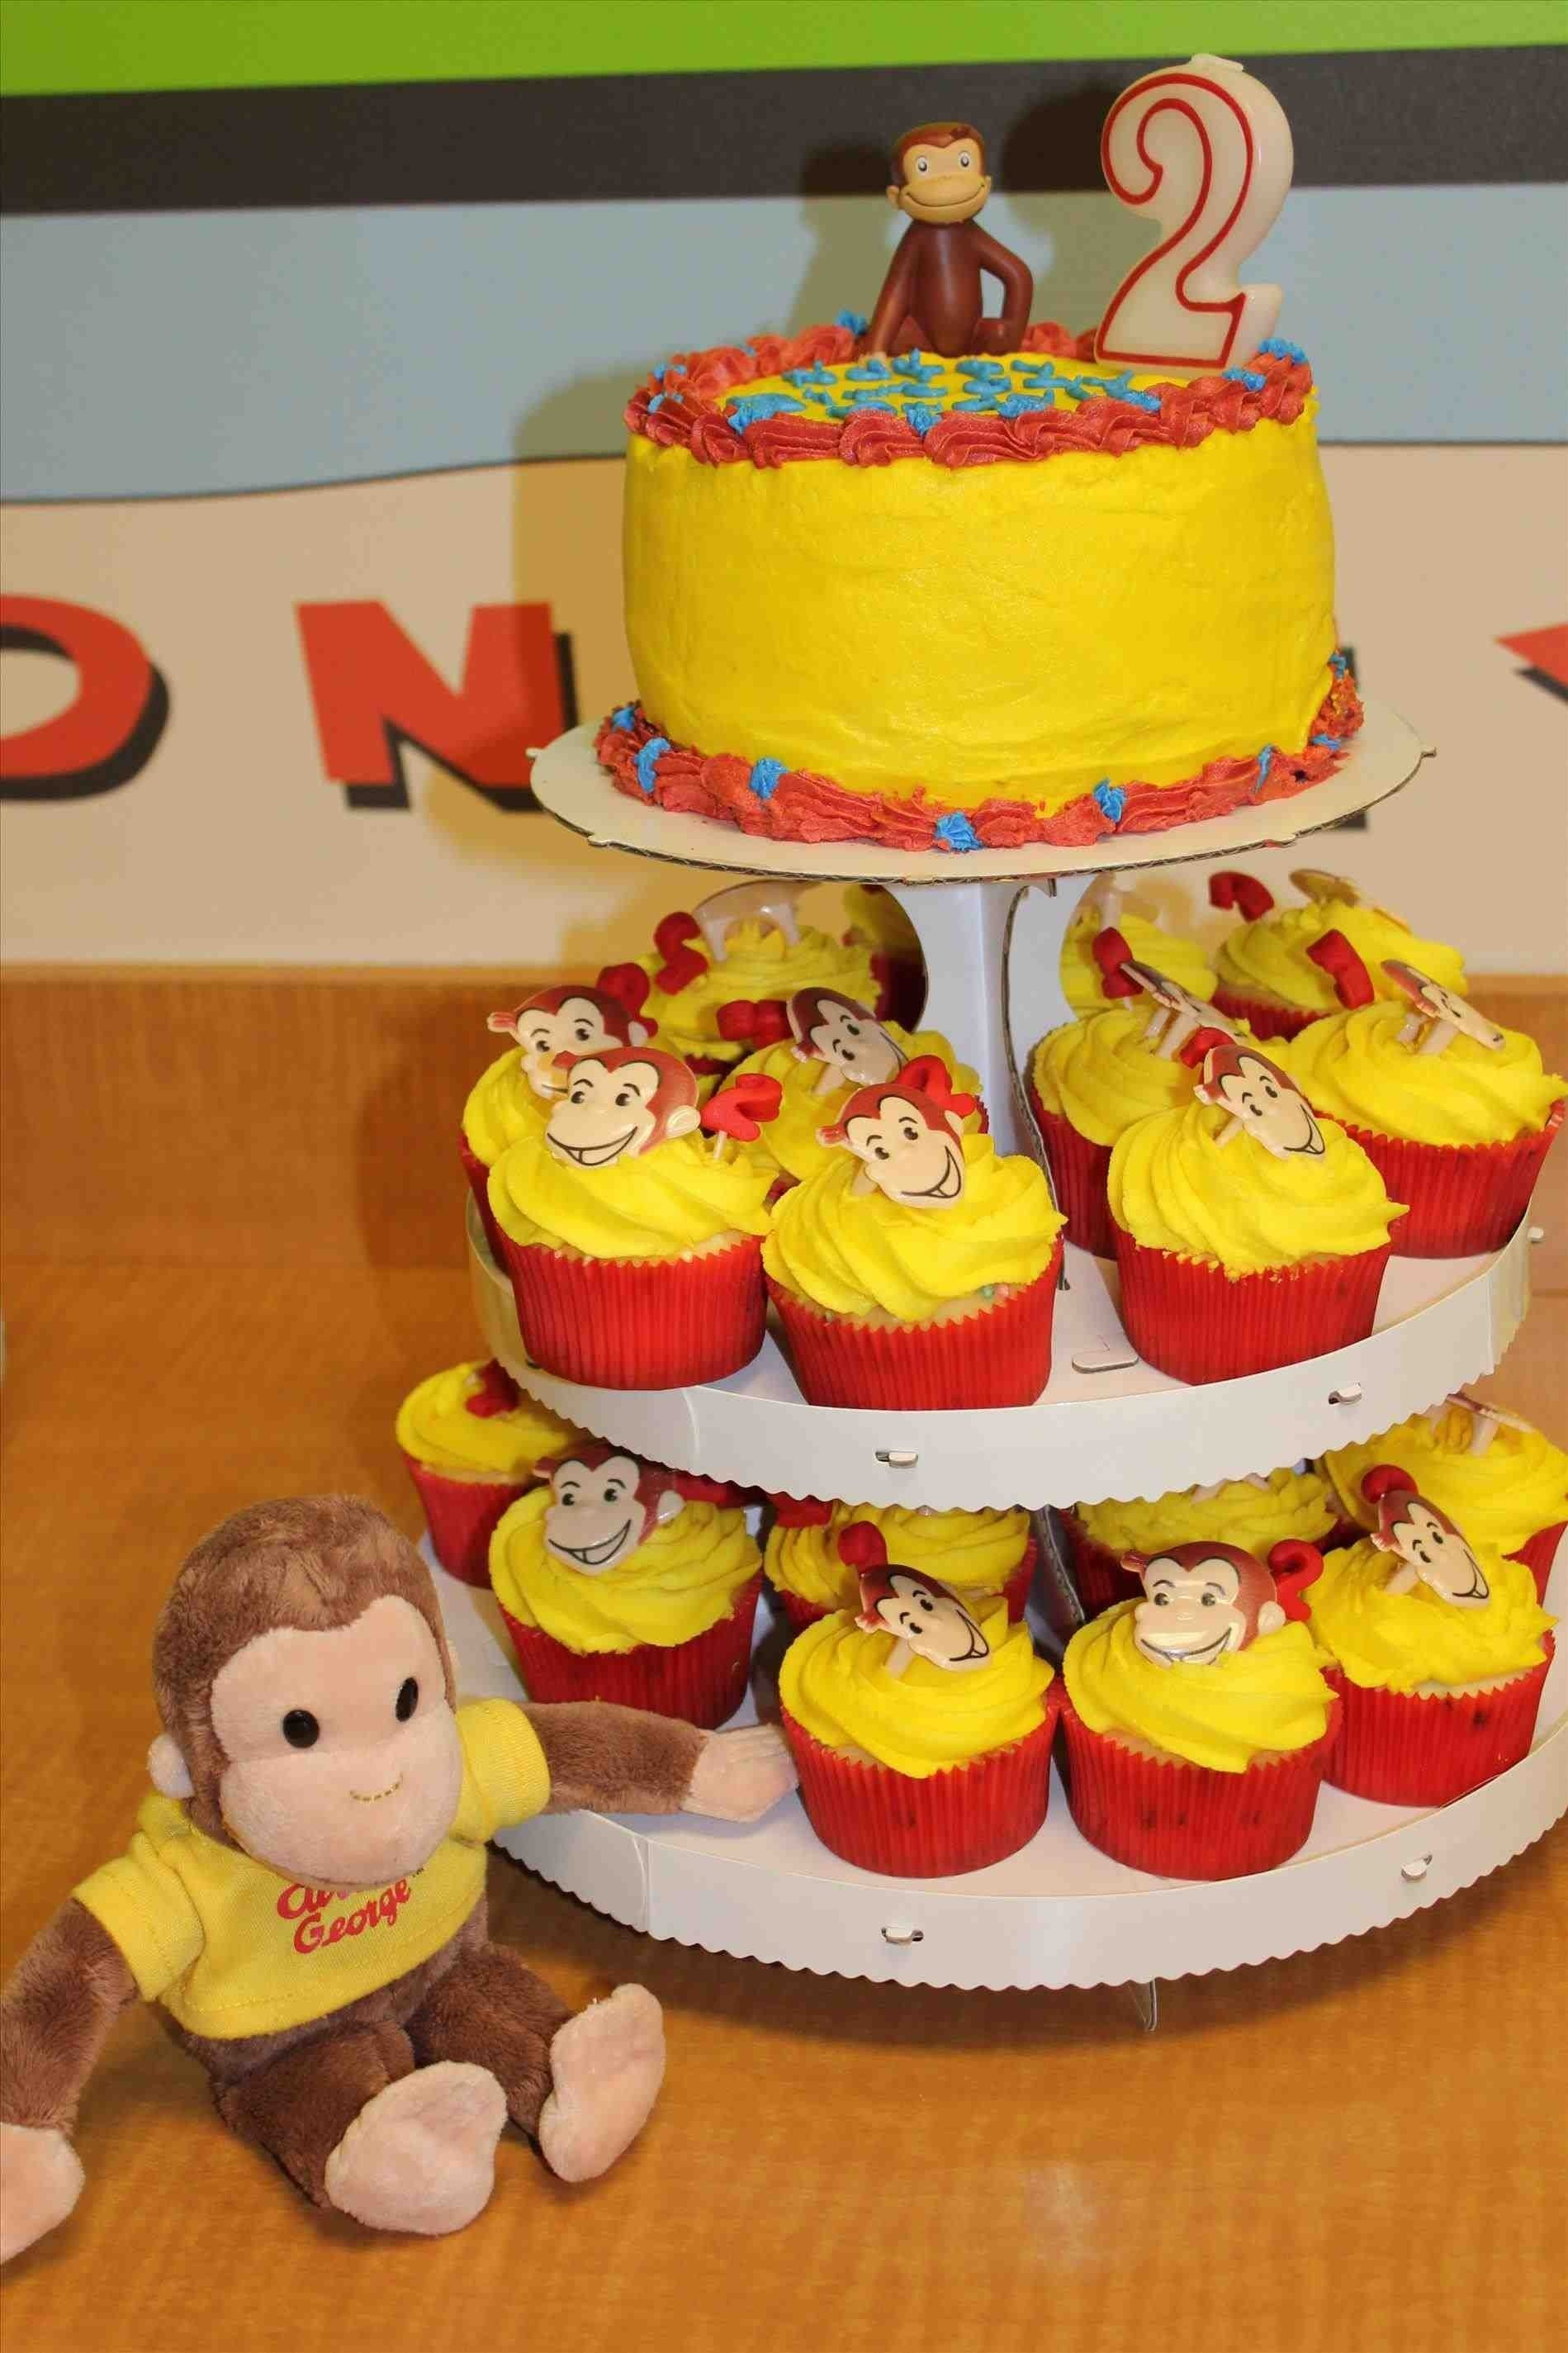 10 Famous Curious George Birthday Cake Ideas curious george cake template showbizprofile 2021